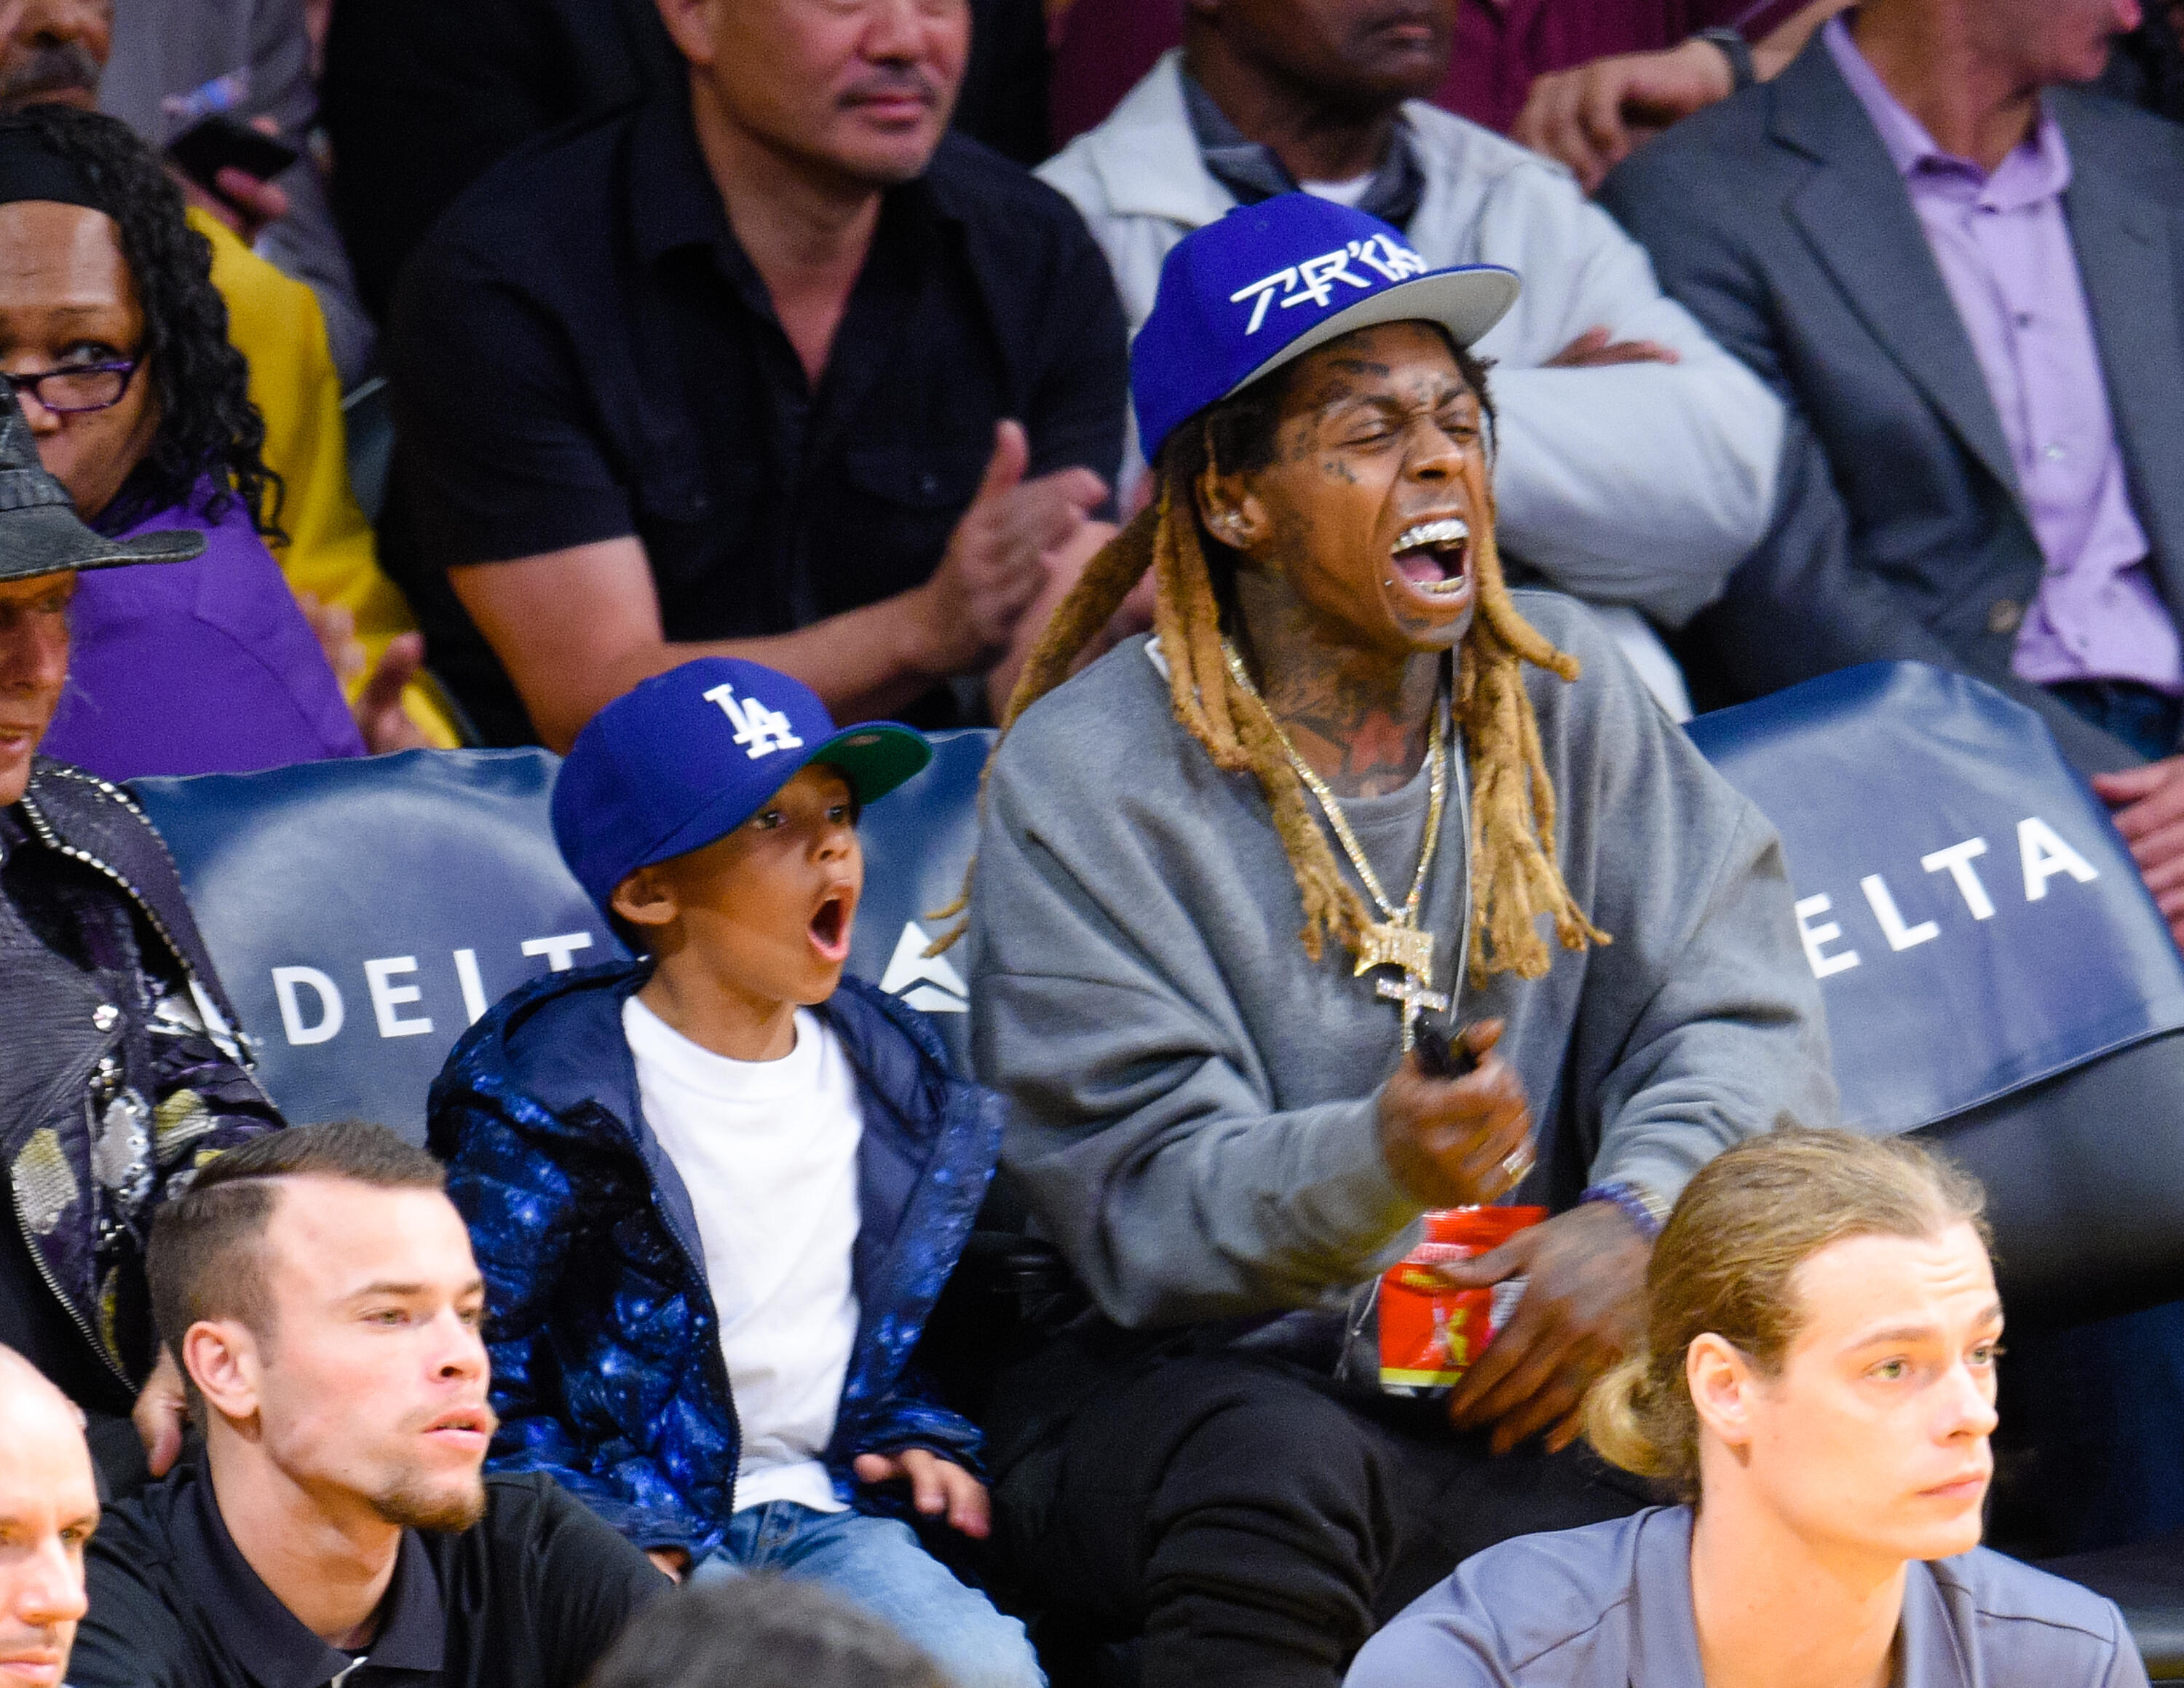 First Public Pics Of Lauren London & Lil Wayne's Son Are ...Lauren London And Lil Wayne